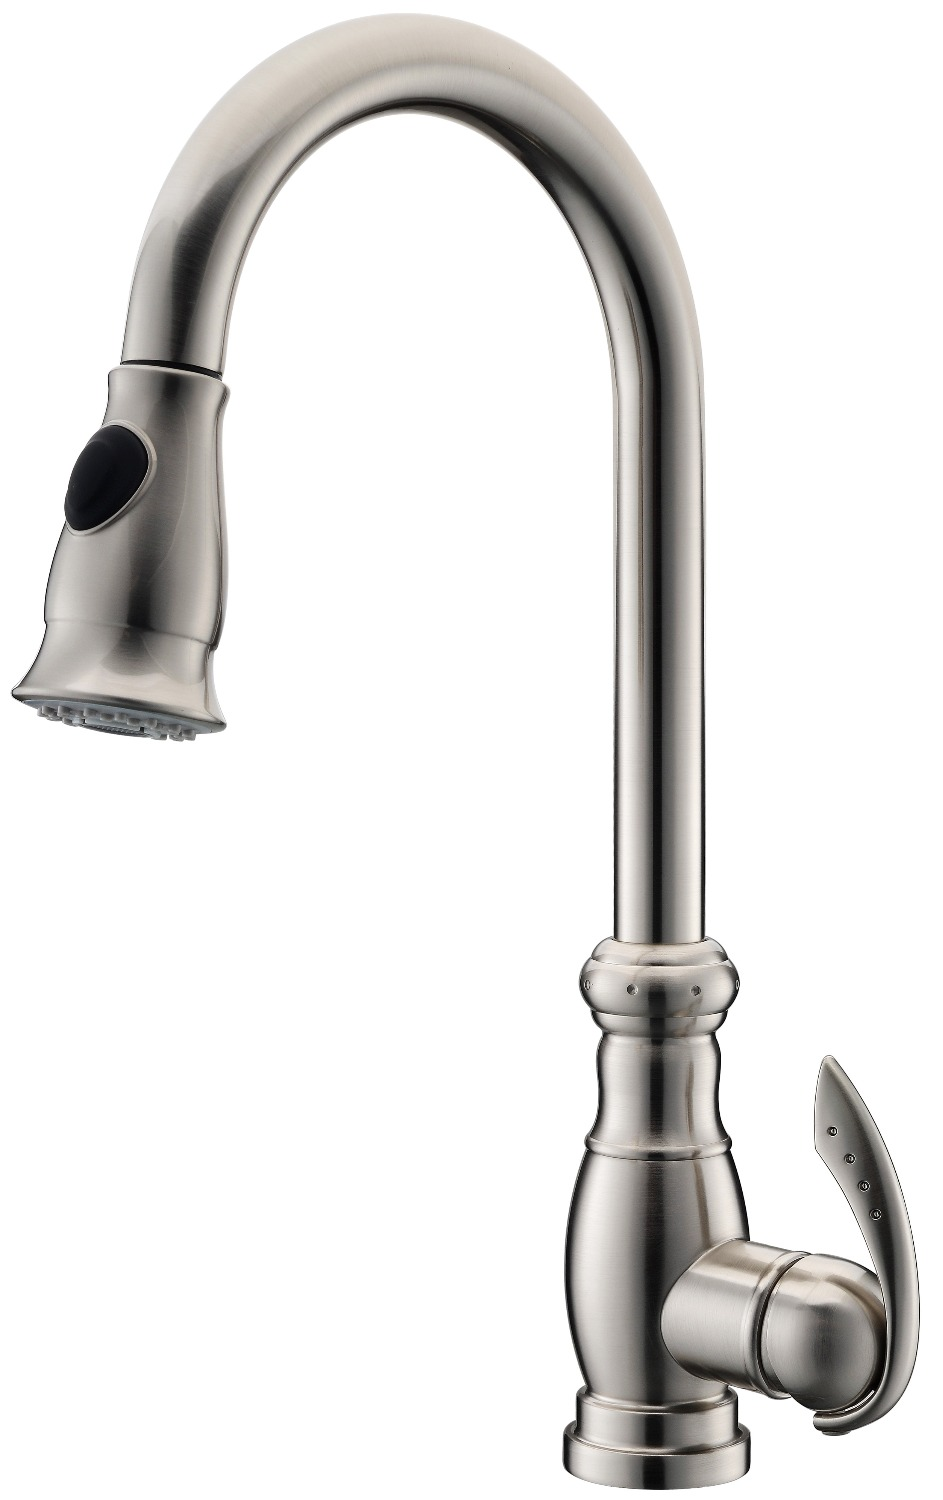 Free ship brushed nickel clour pull out kitchen spray faucet mixer tap Single hole Deck mounted